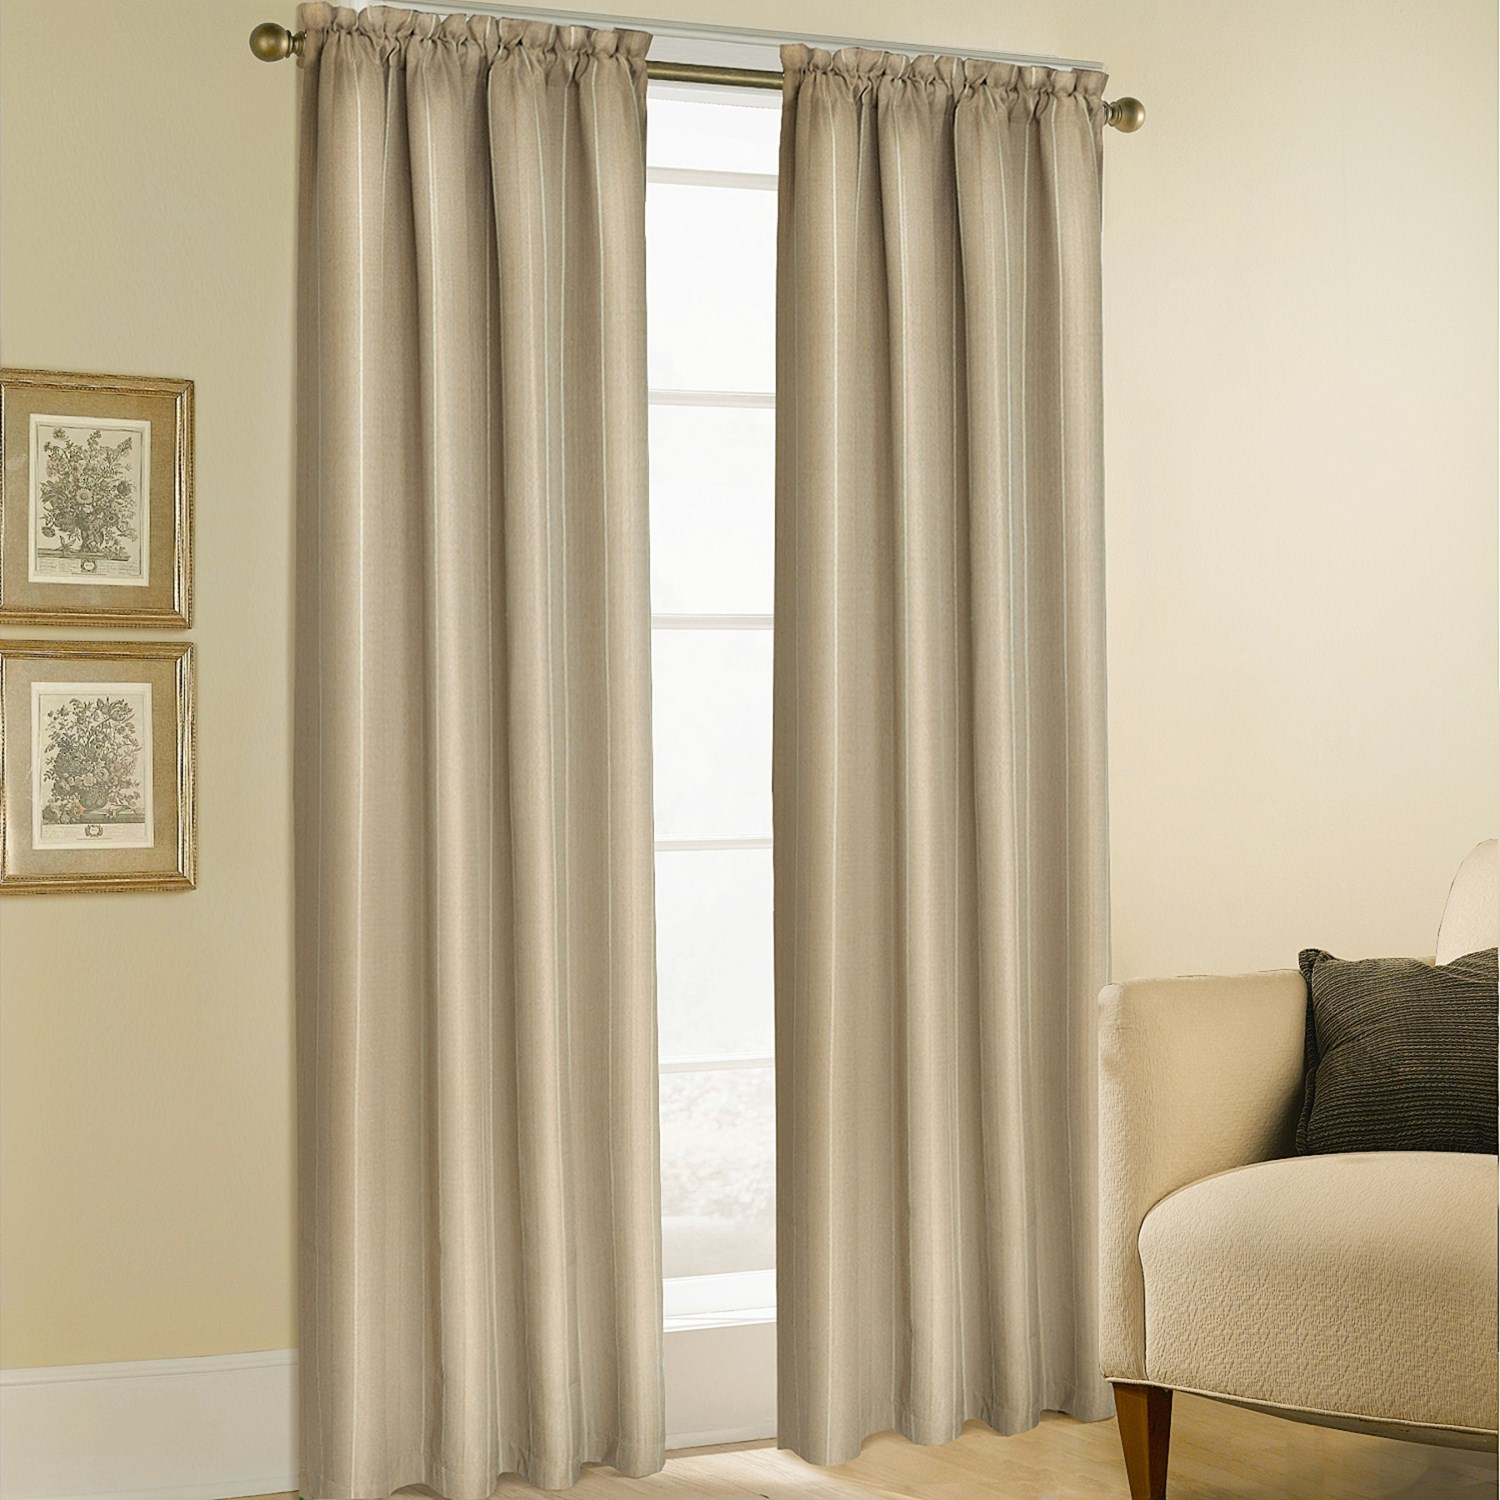 united curtain co bedford curtains 108x63 rod pocket in linen